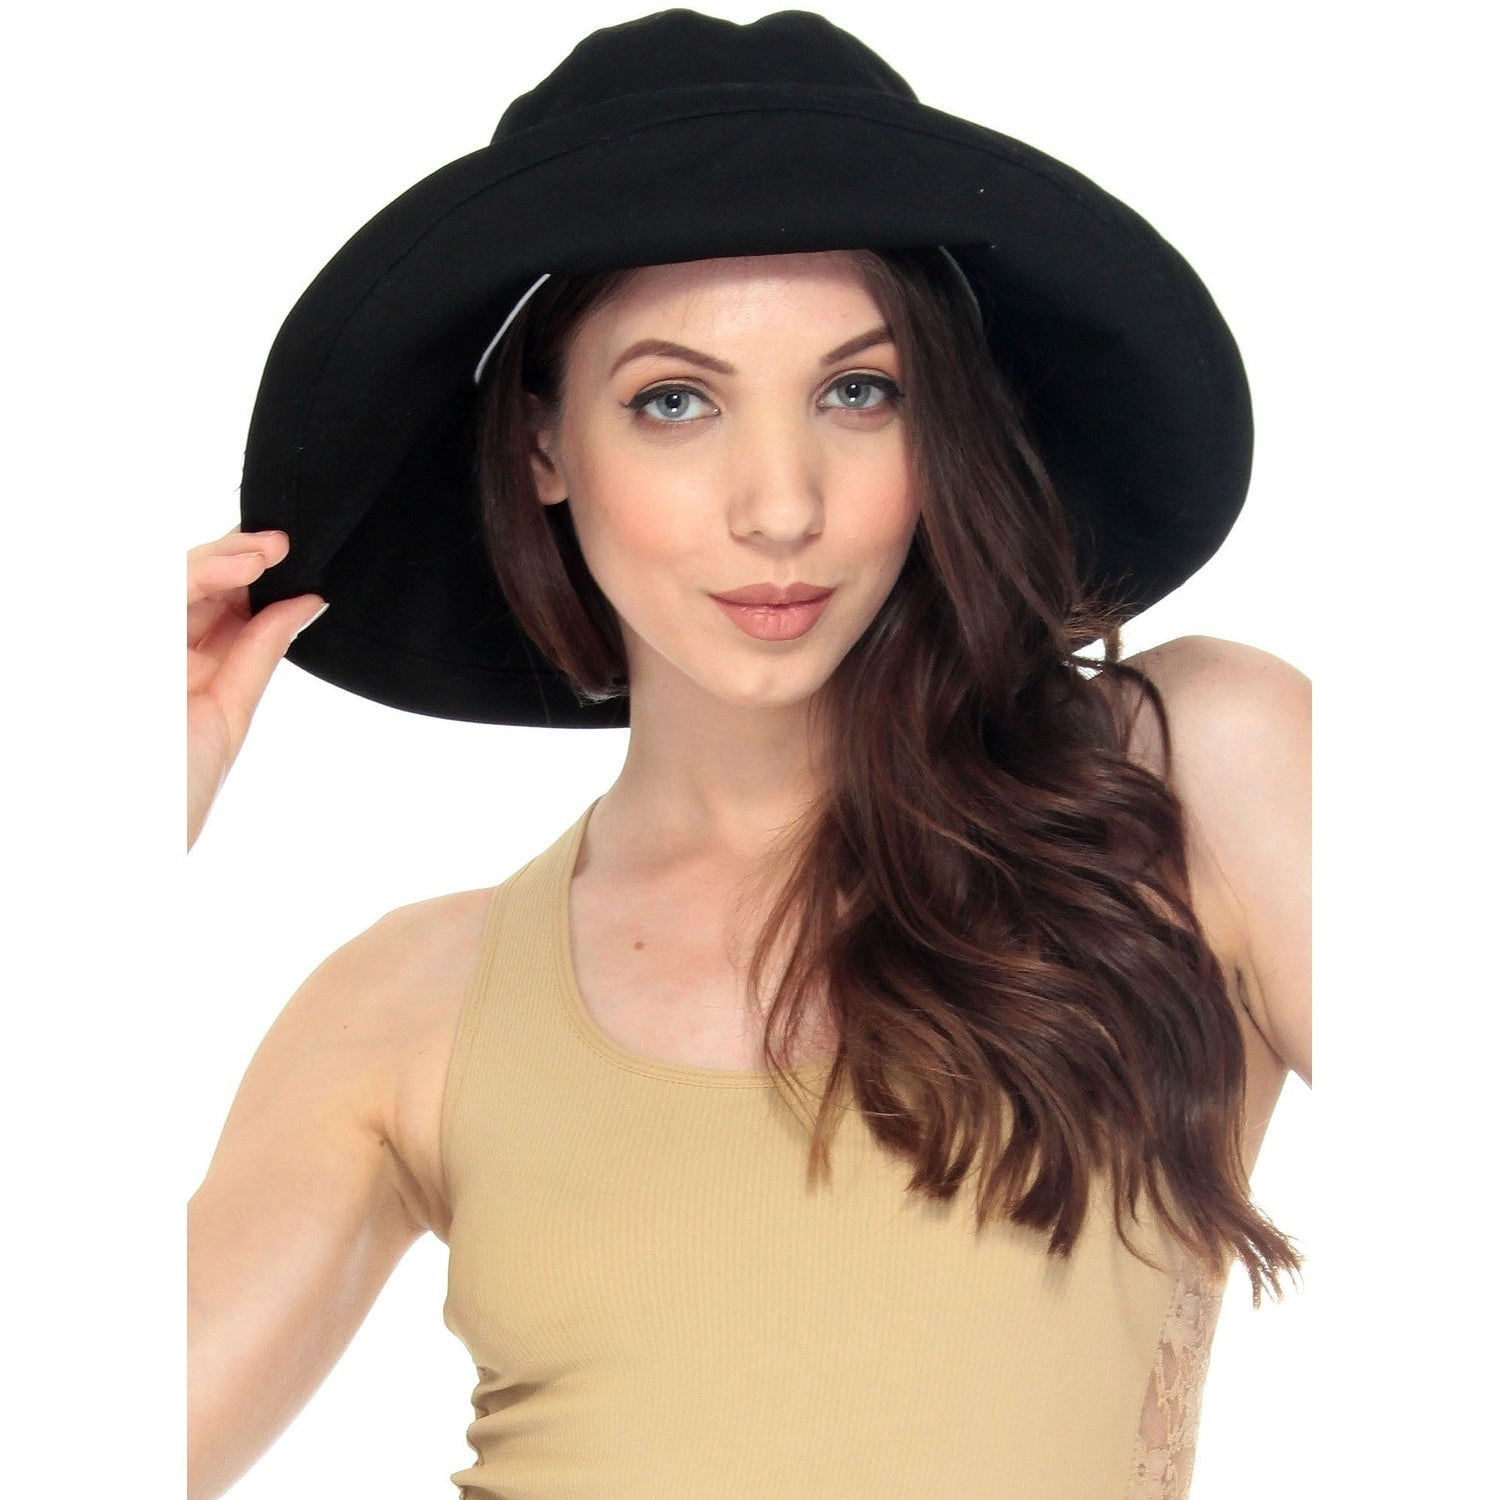 04a1cb99e05 Shop womens foldable cotton wide brim bucket hat with sun protection on  sale free shipping on